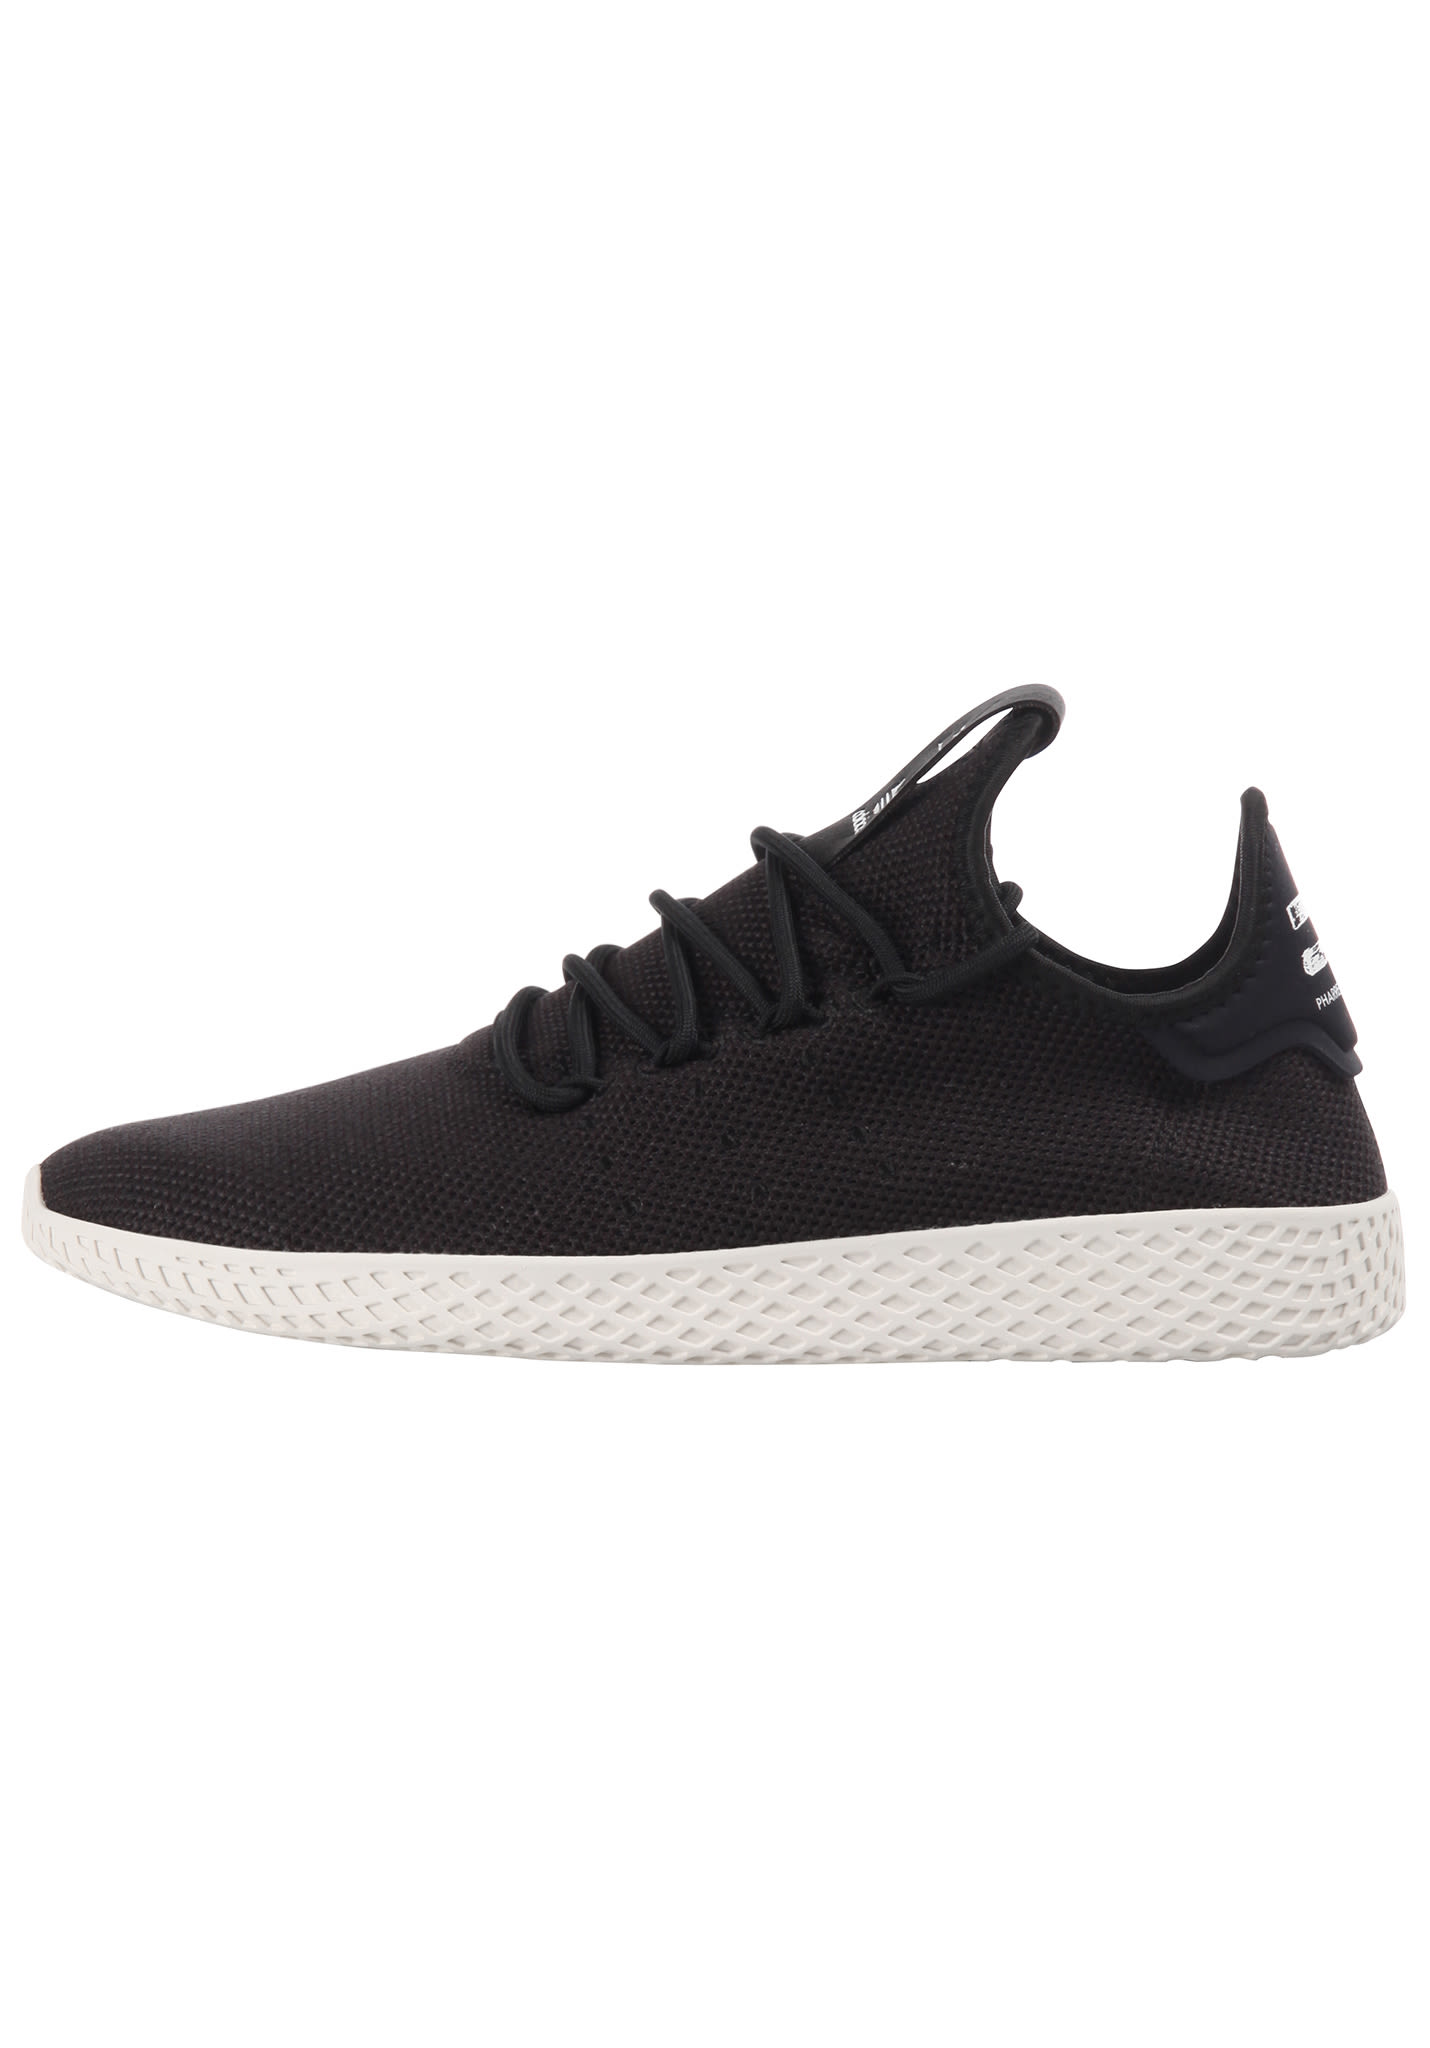 adidas Originals Pharrell Williams Tennis HU - Sneaker für Herren - Schwarz